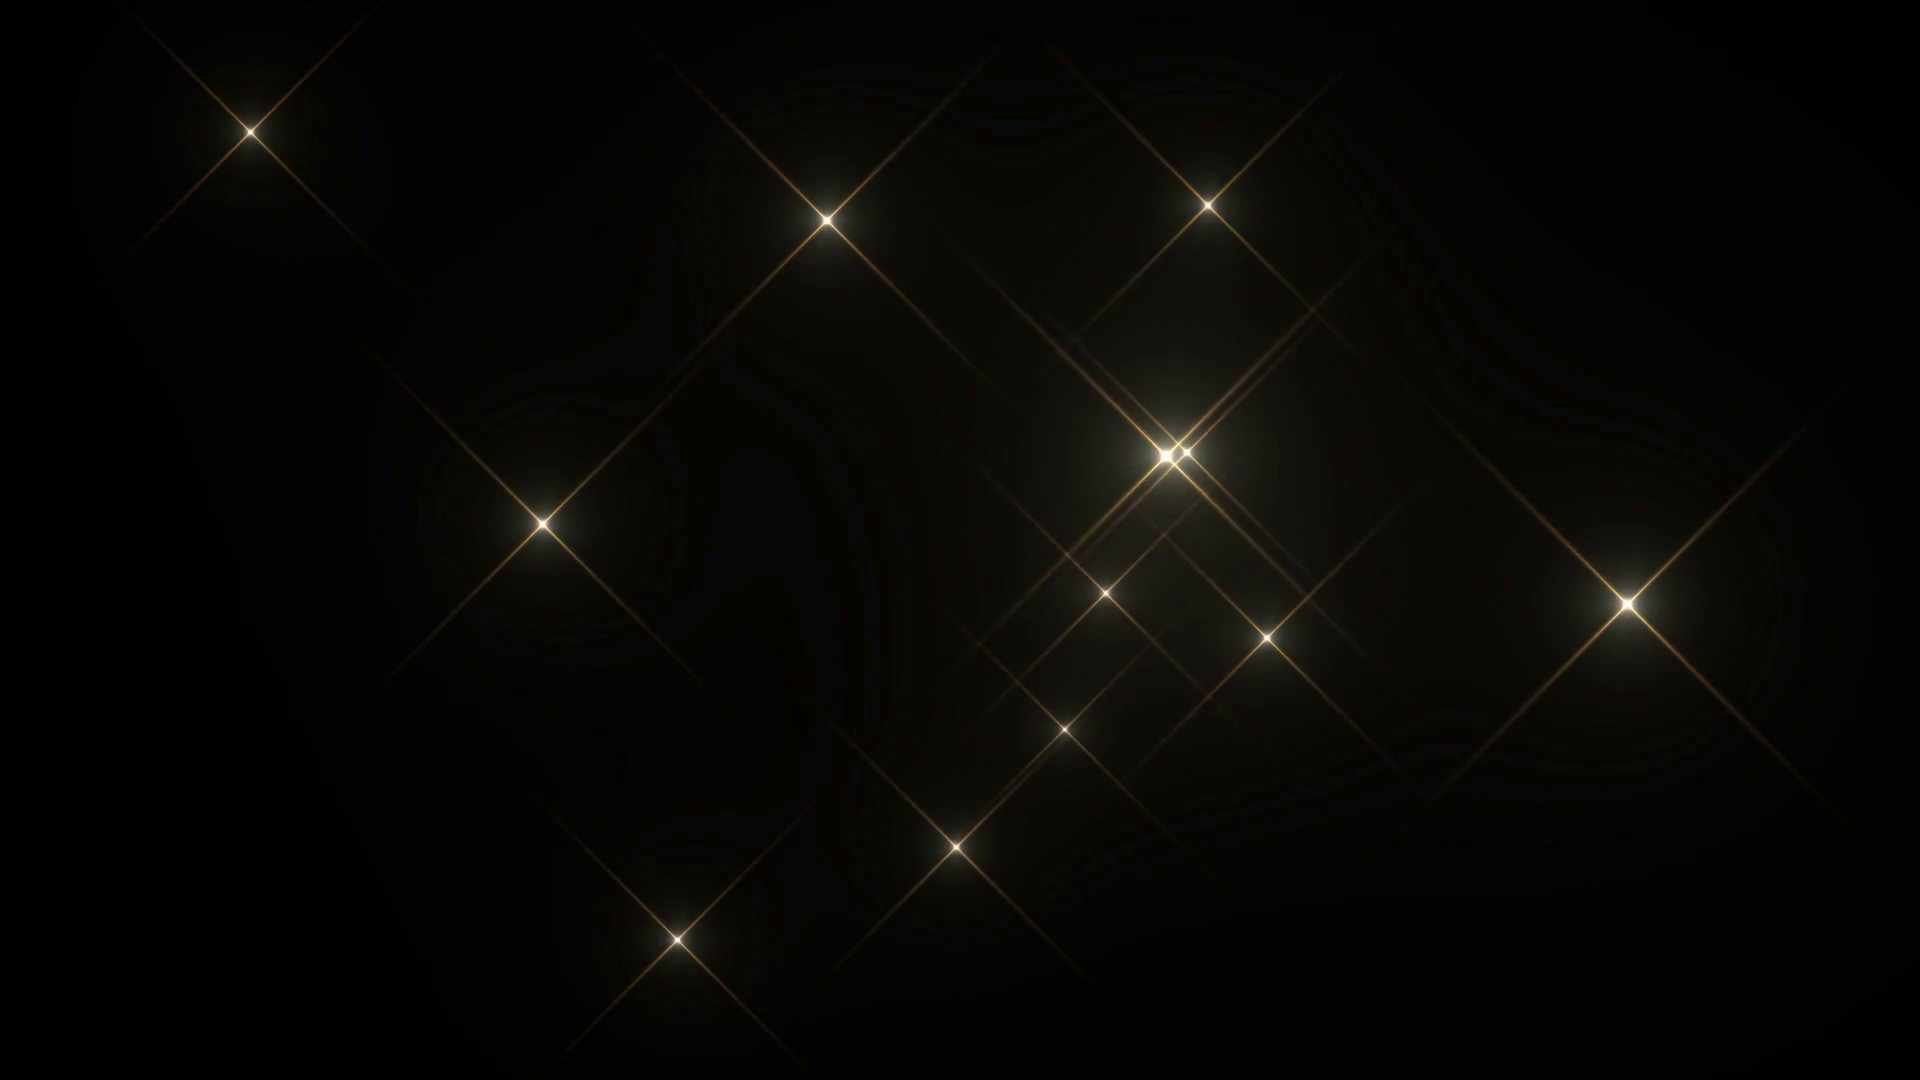 Animated Stars Overlay Background Motion Background.